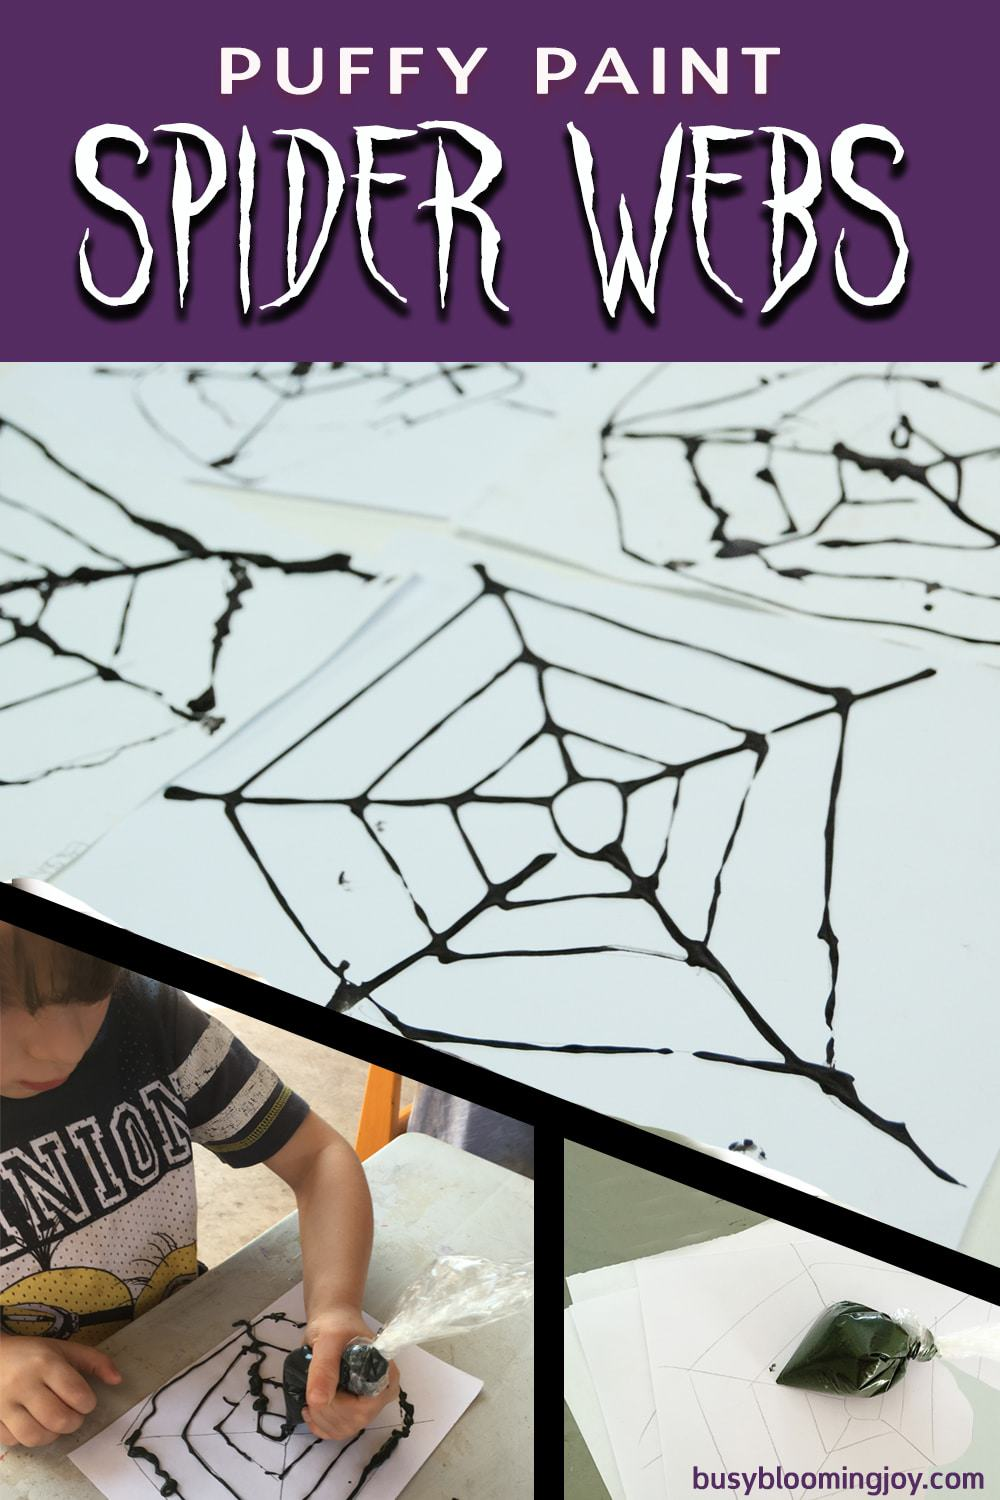 Puffy paint spider web craft – fine motor control for kids